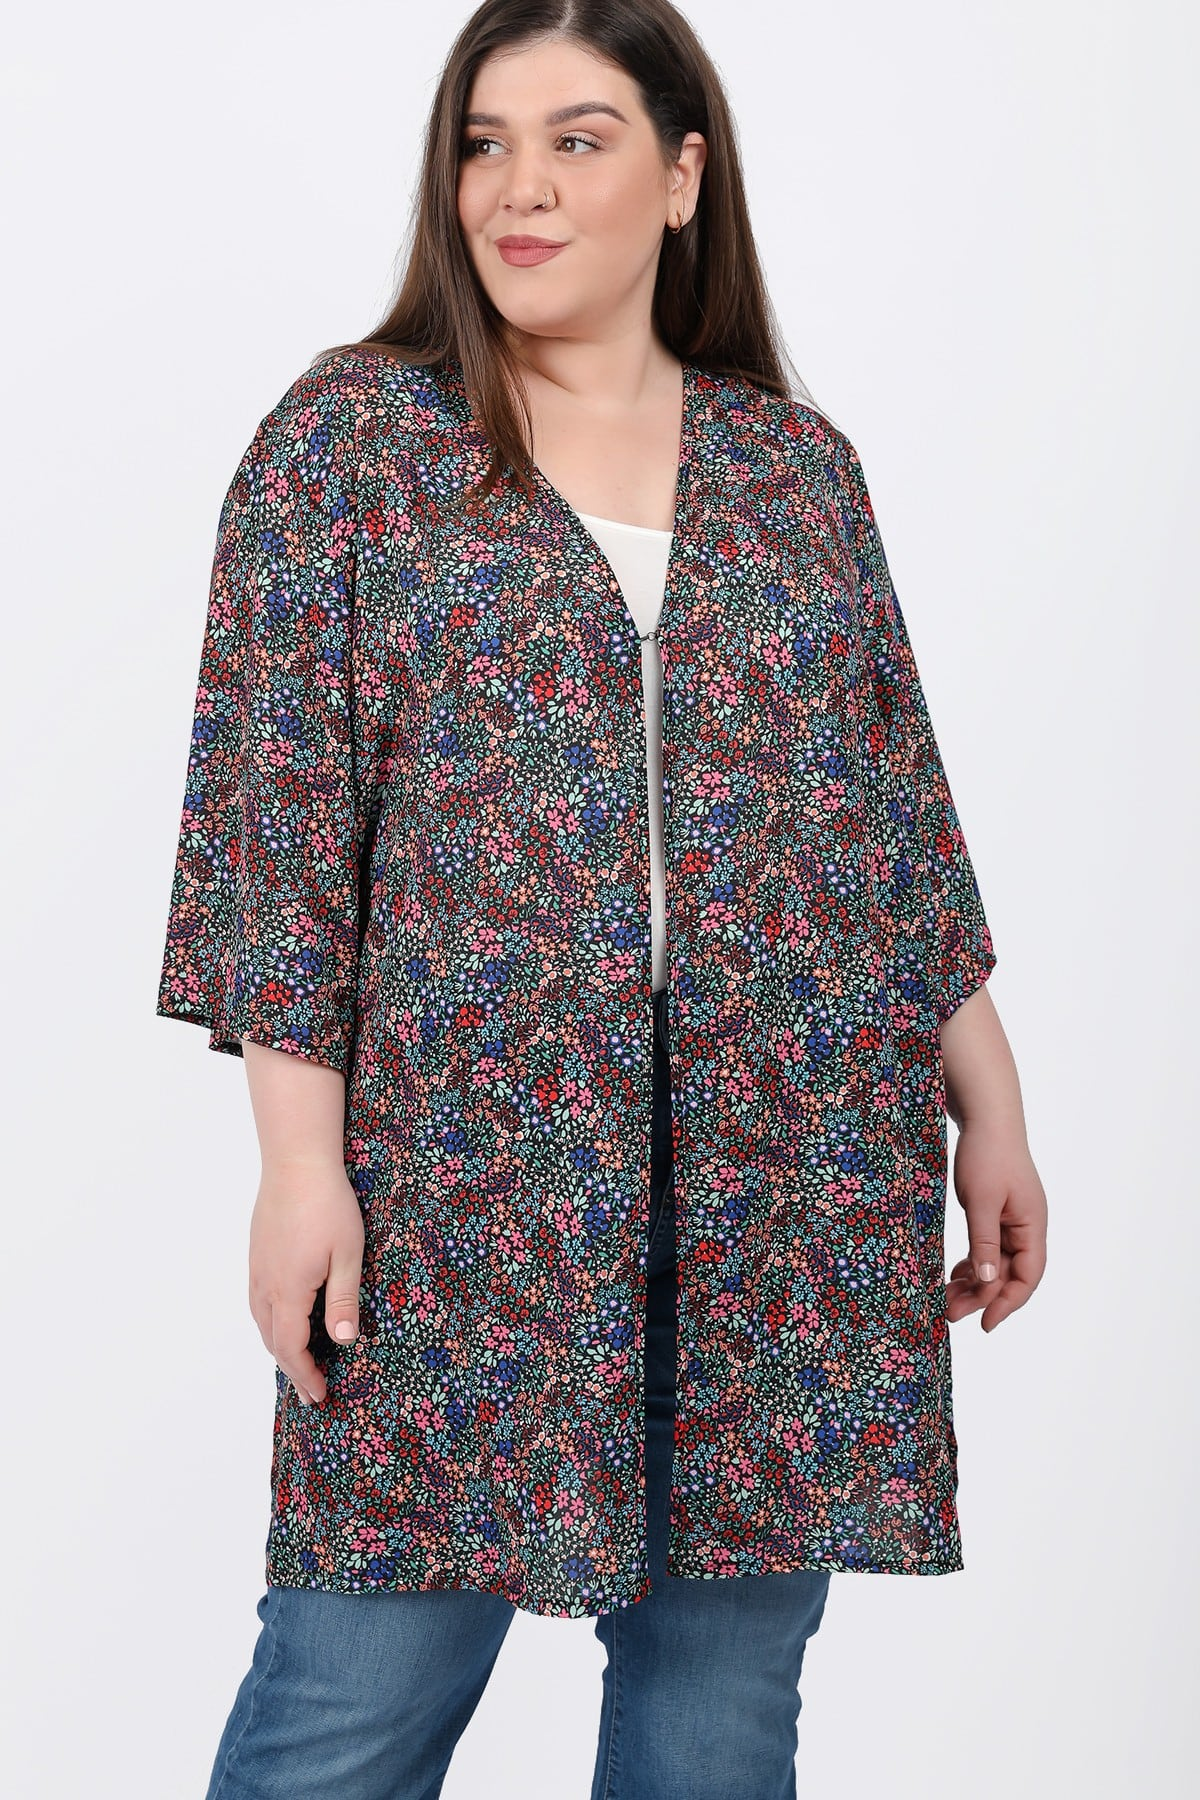 Floral printed kimono from georgette